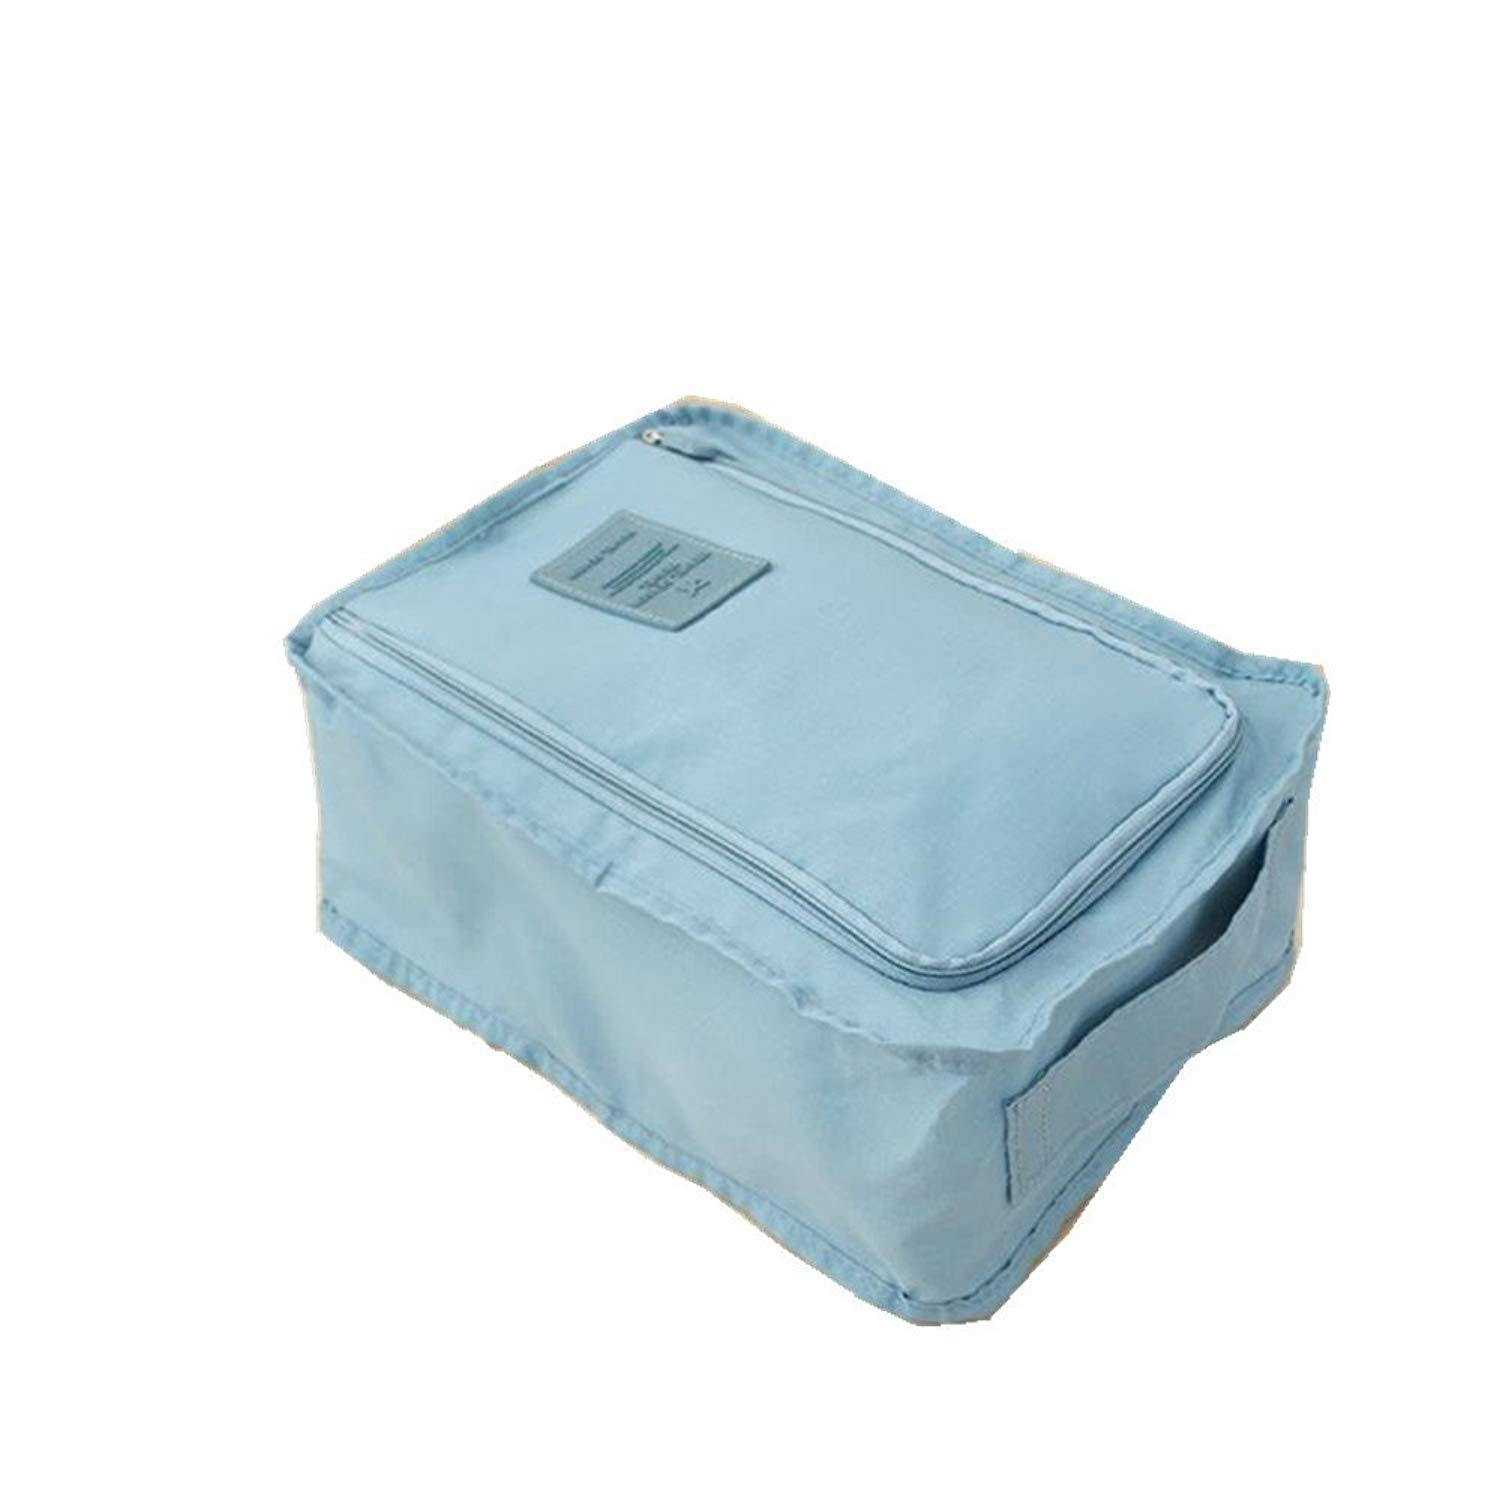 53b31f97cd1d Cheap Shoe Travel Bags, find Shoe Travel Bags deals on line at ...